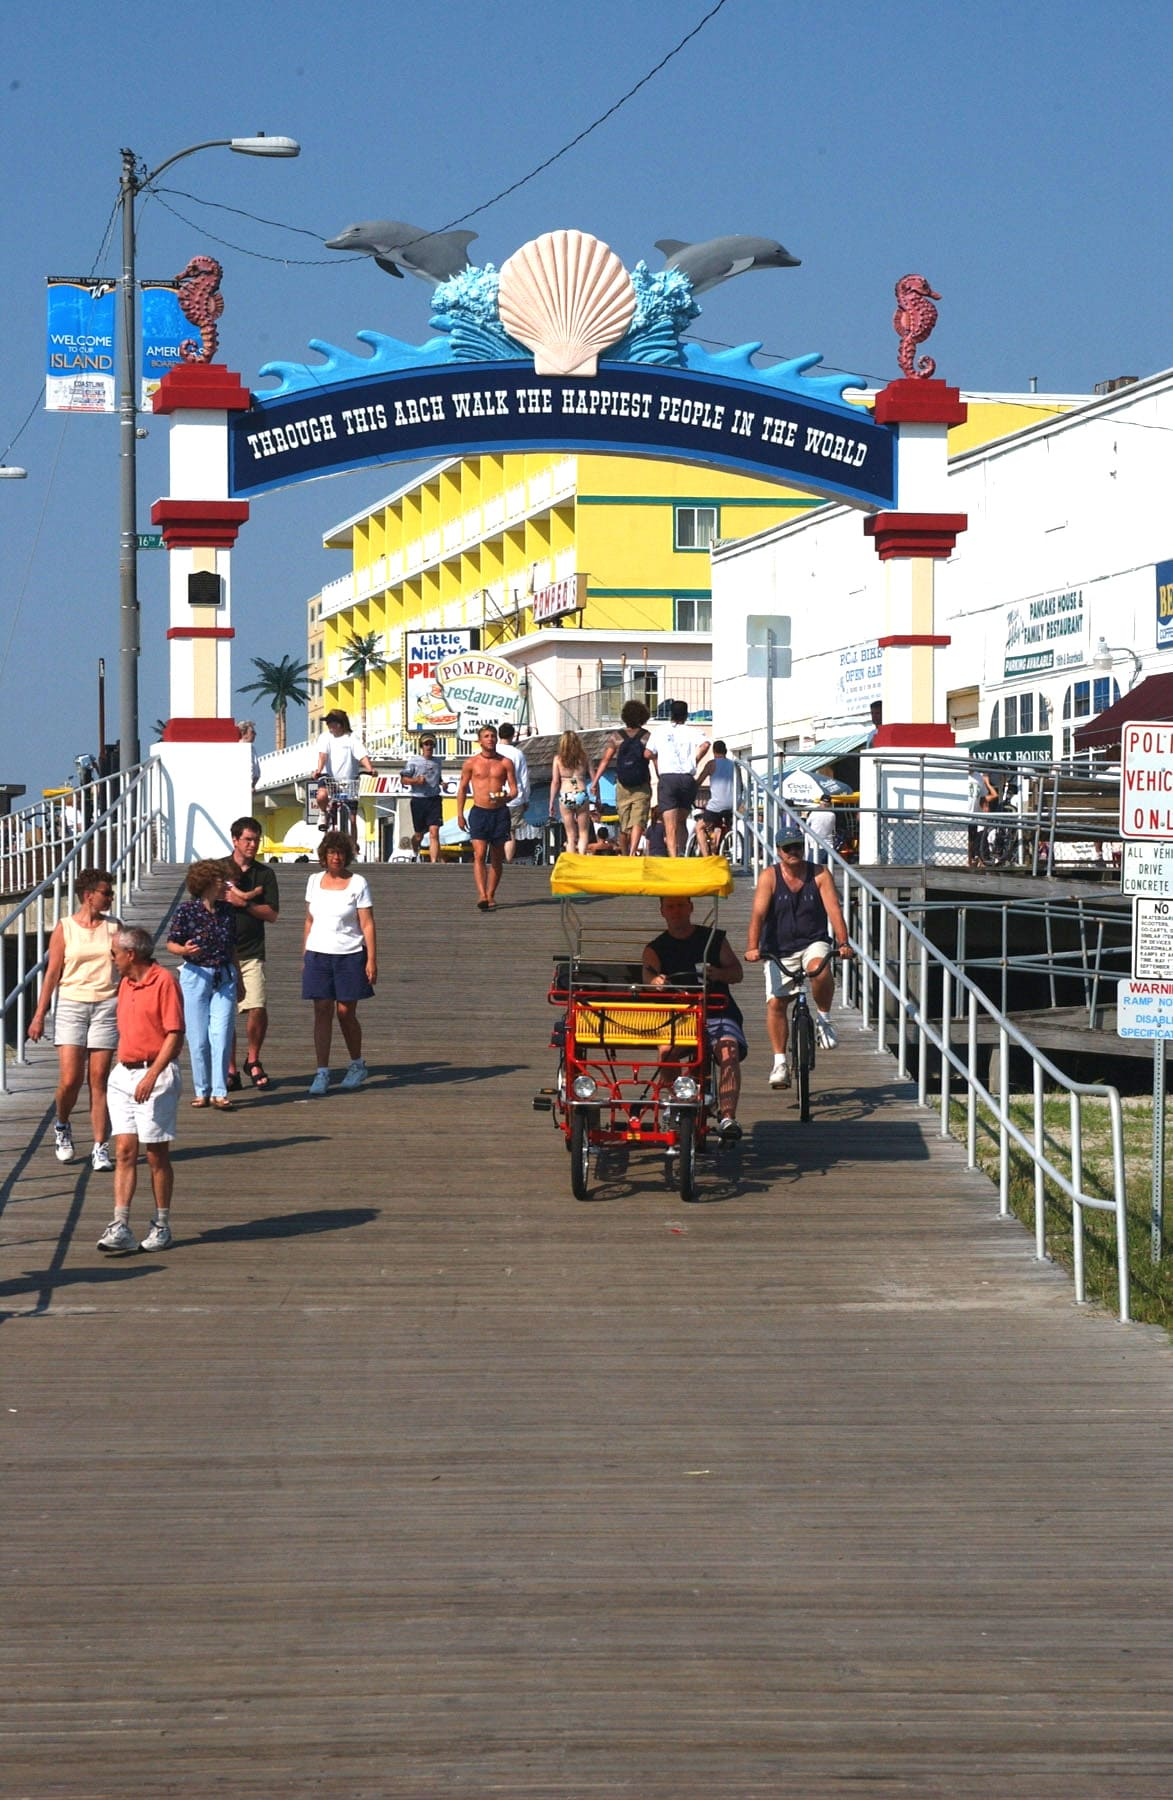 Wildwood, nj boardwalk web cam selfie